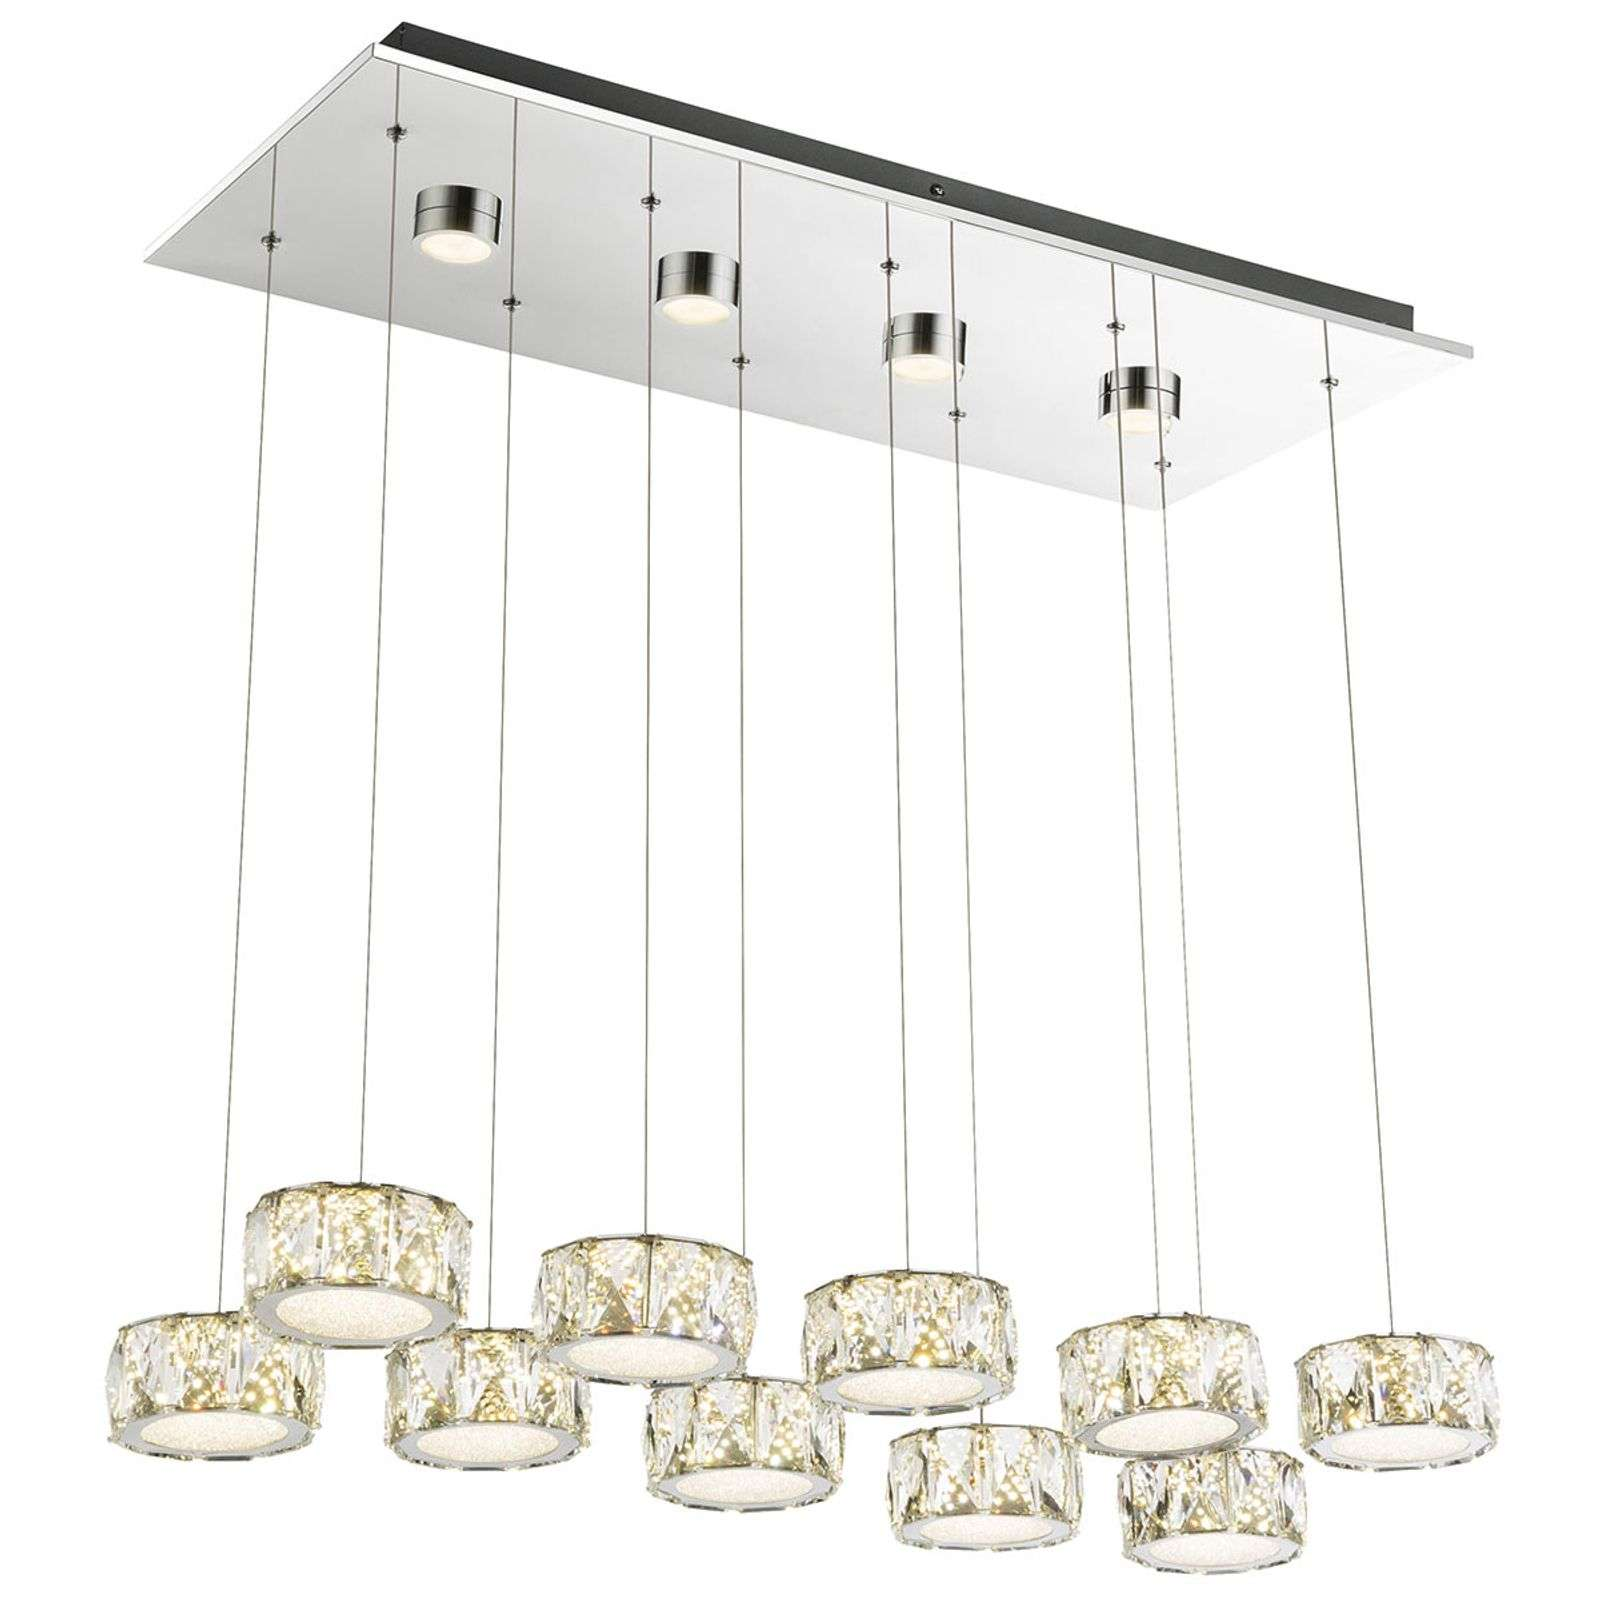 Suspension LED à 10 lampes Amur avec quatre spots